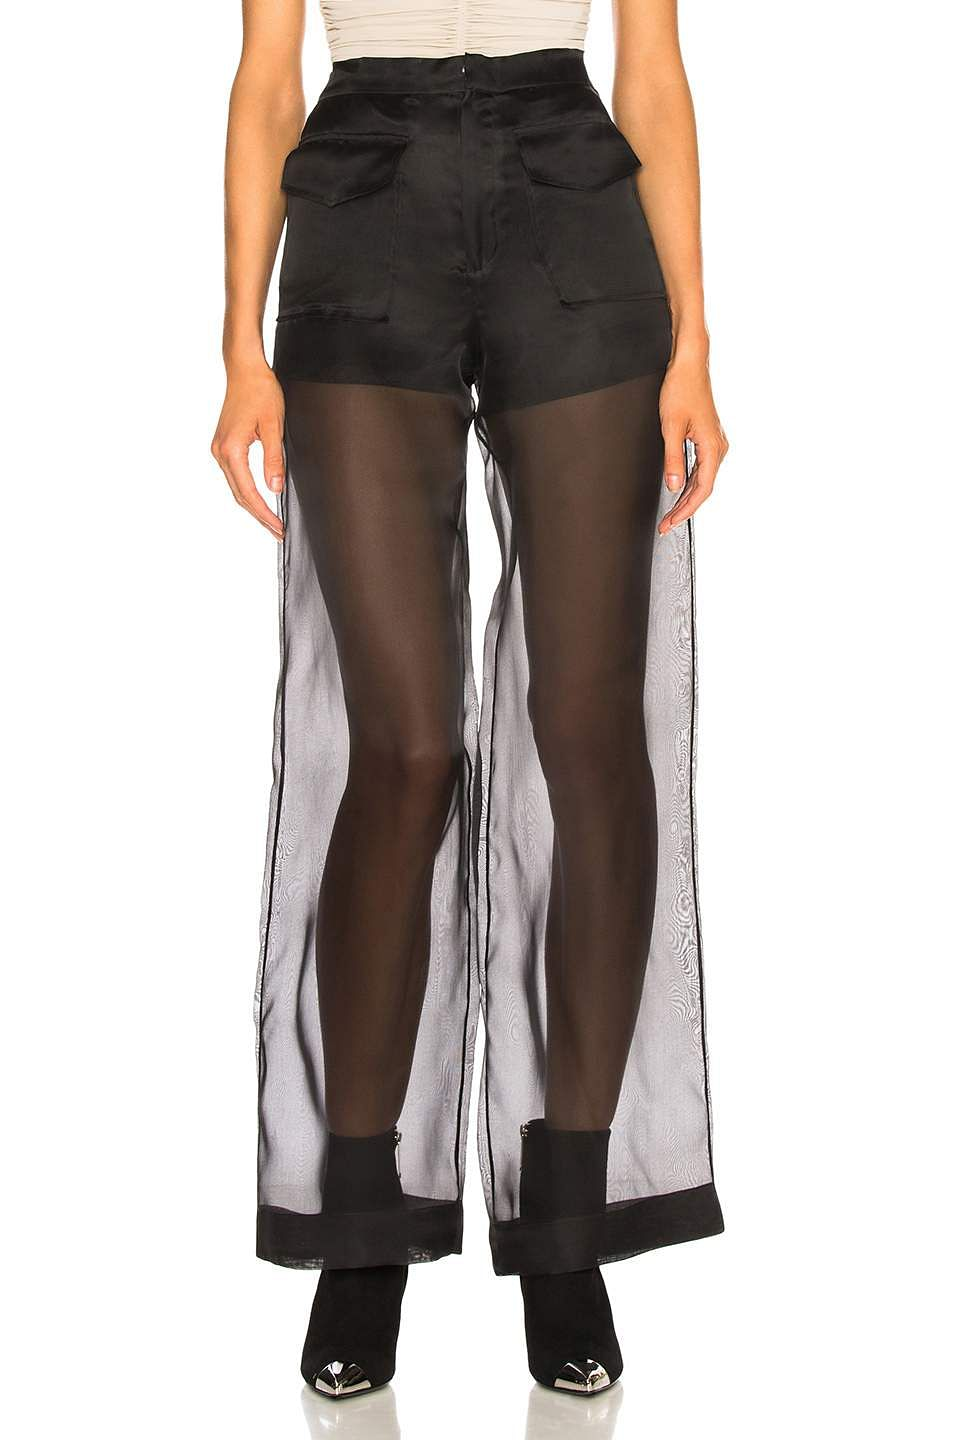 Sheer pants made of organza